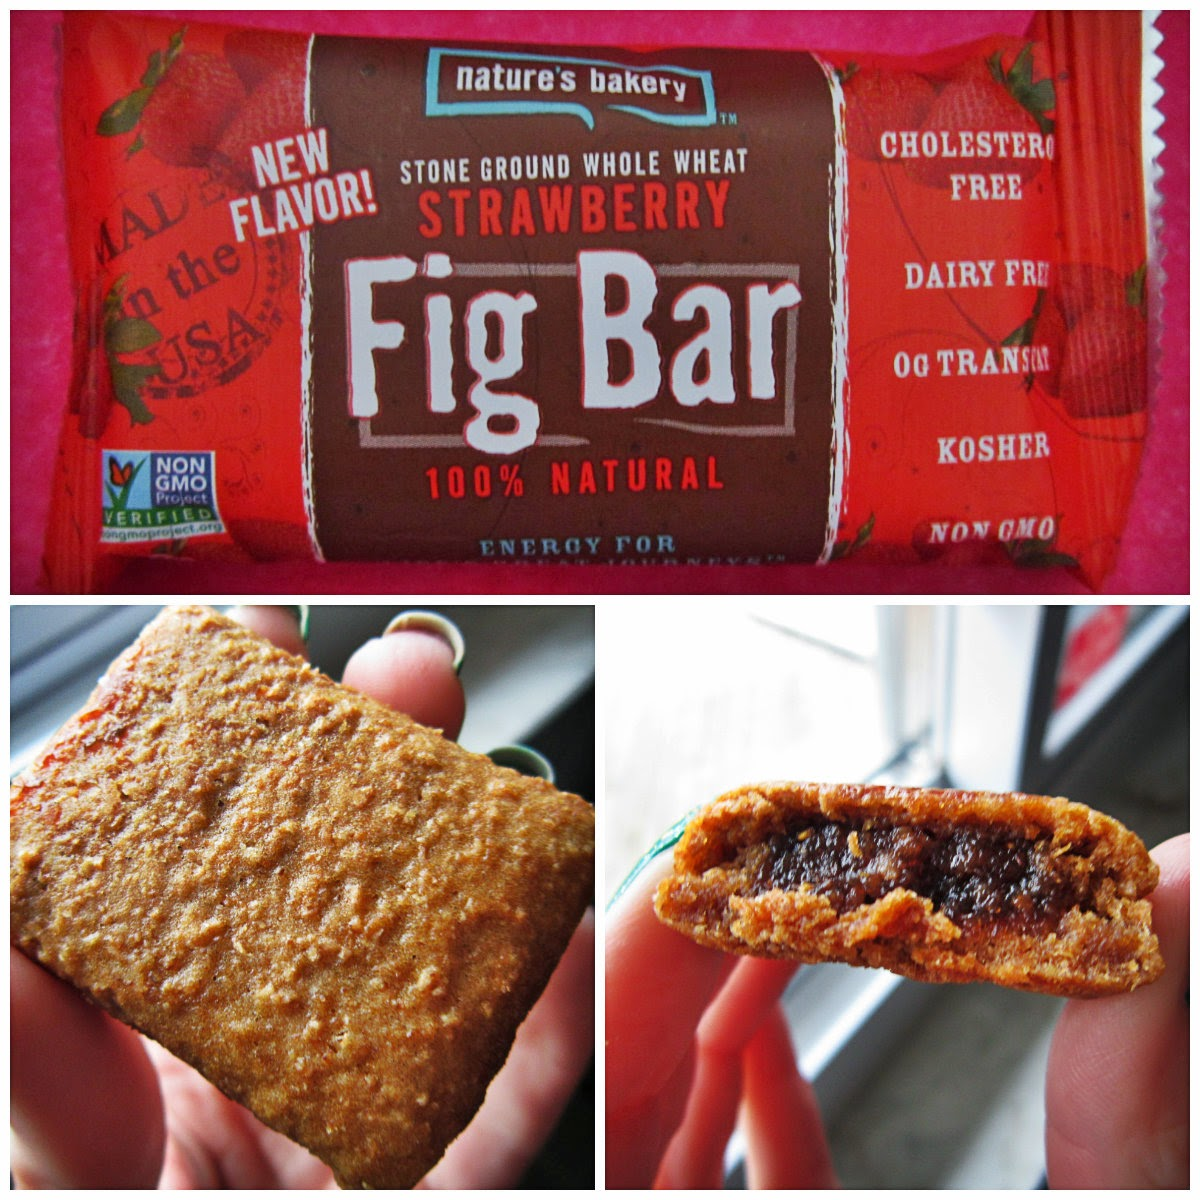 Nature's Bakery All Natural Stone Ground Whole Wheat Strawberry Fig Bars